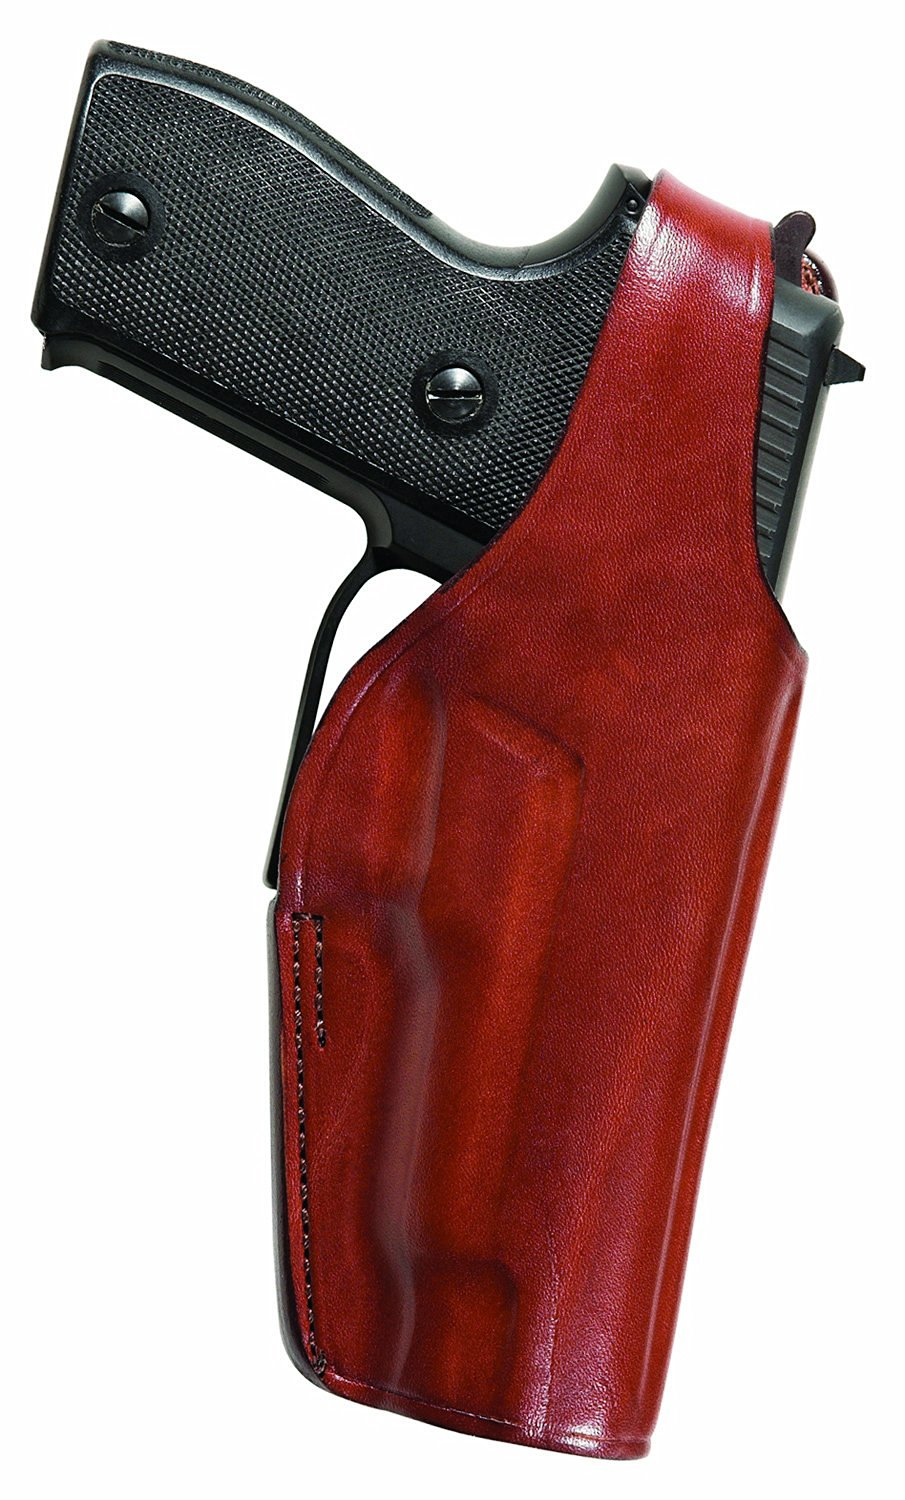 Bianchi 19L Thumbsnap Holster - Browning Hi-Power (Tan)